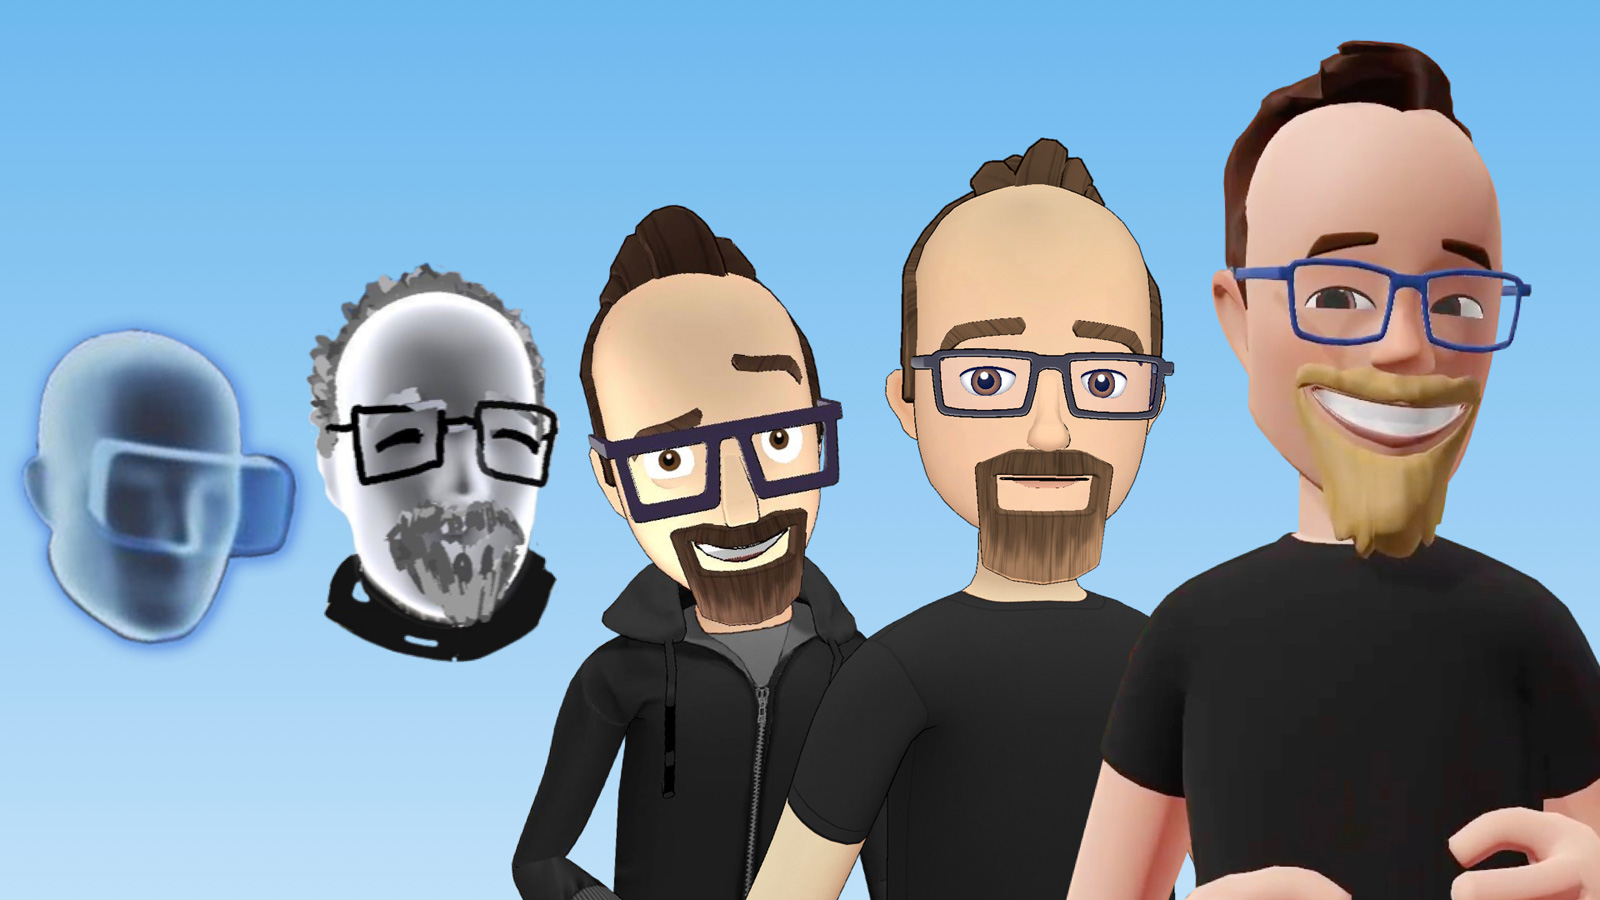 The progression of Facebook's Spaces avatars